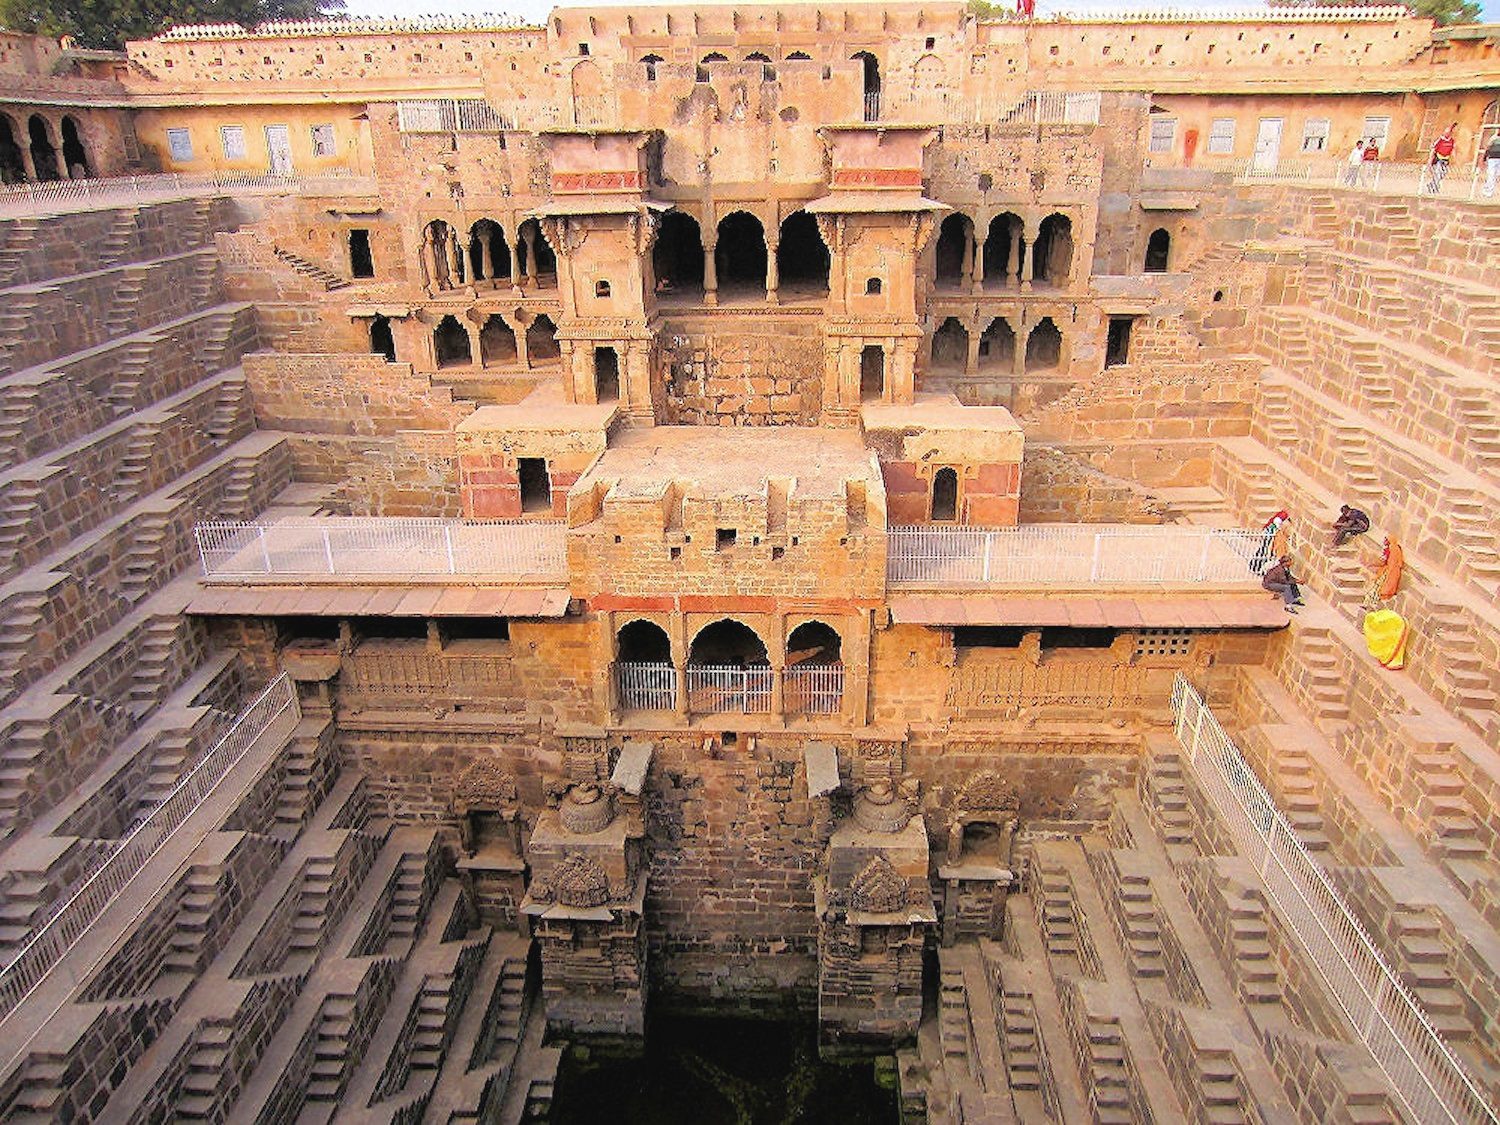 00-wonders-03-chand-baori-150916